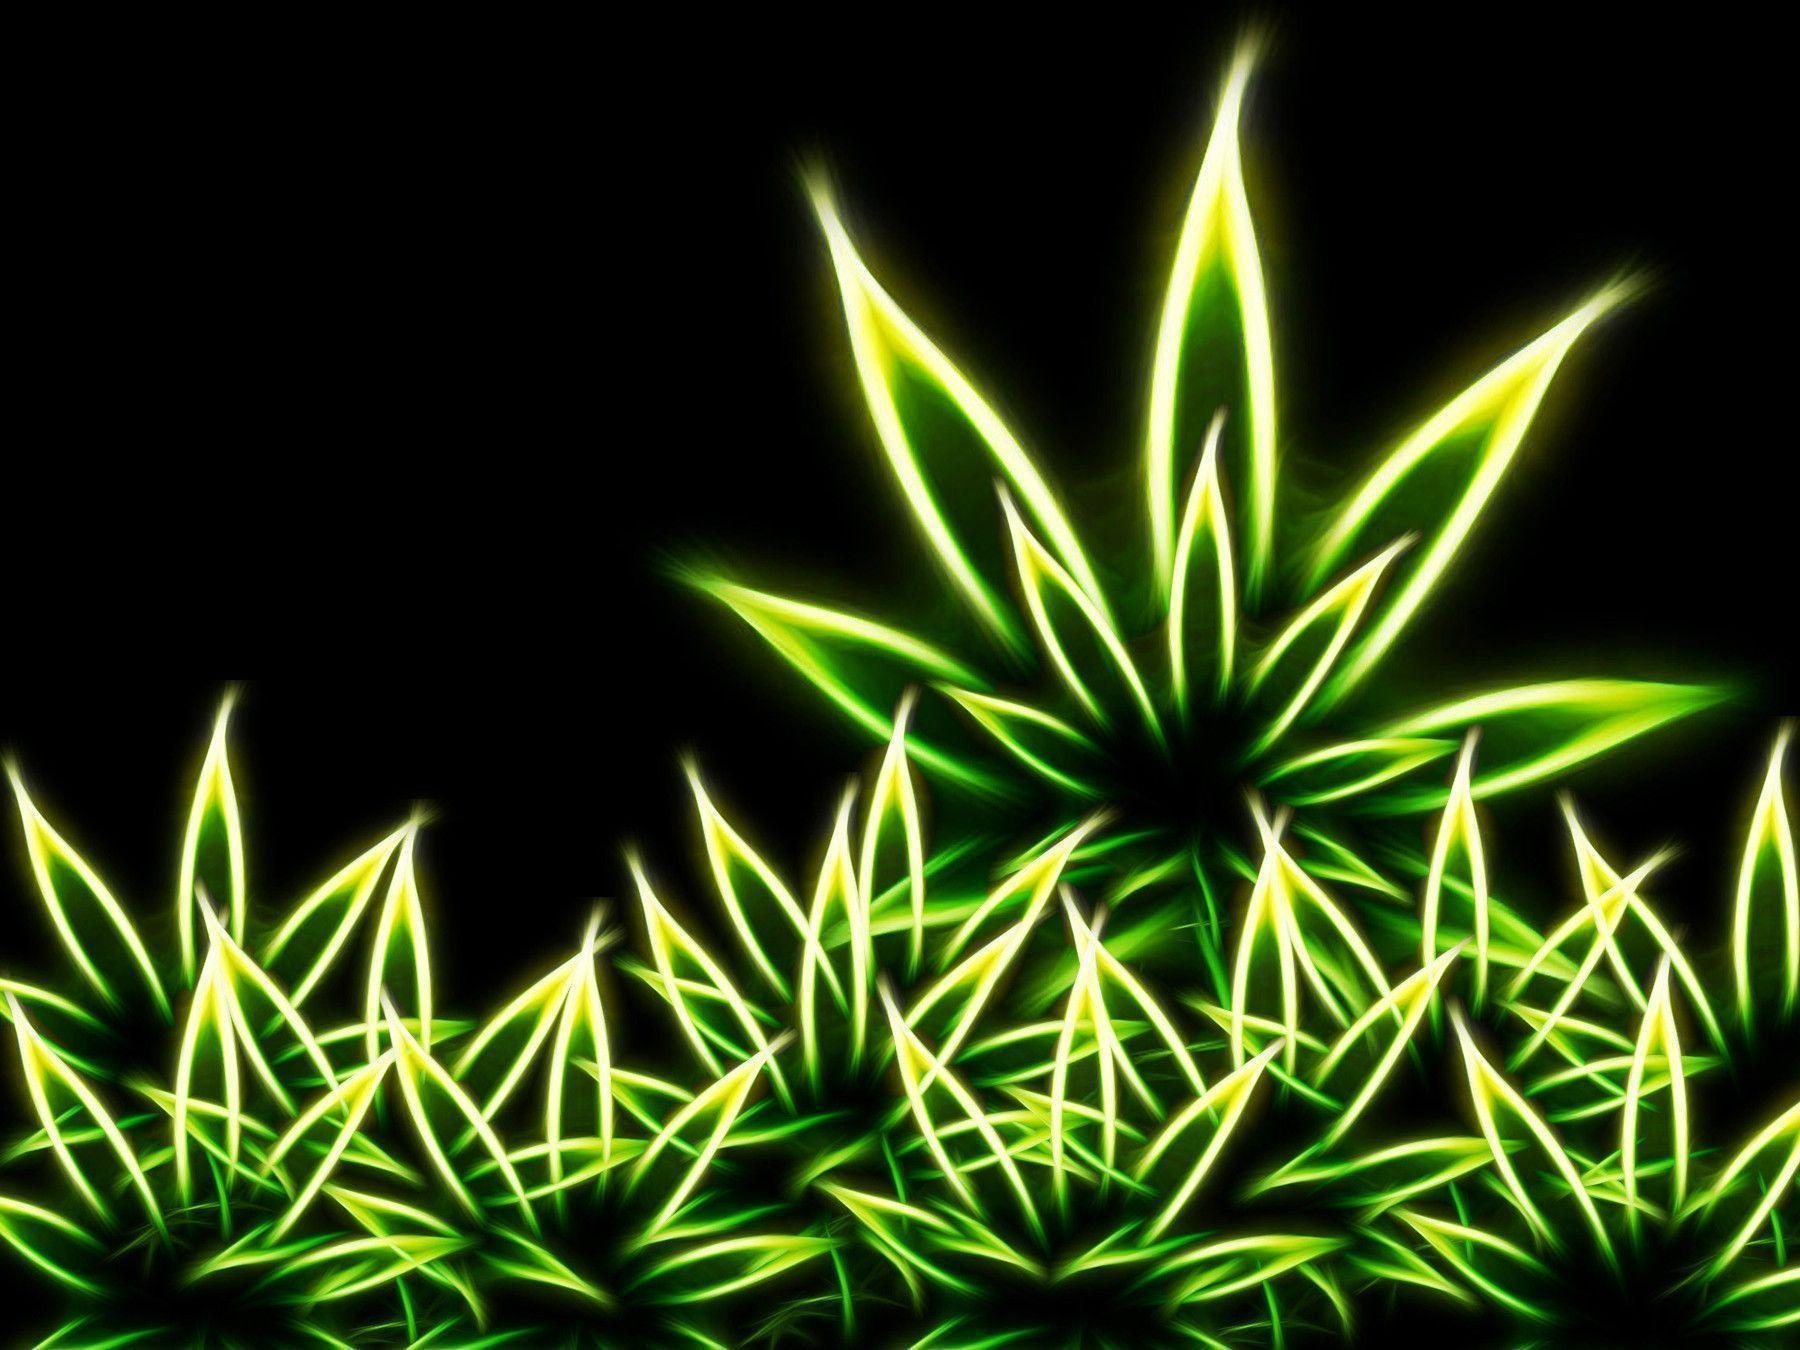 Trippy Weed Backgrounds Tumblr